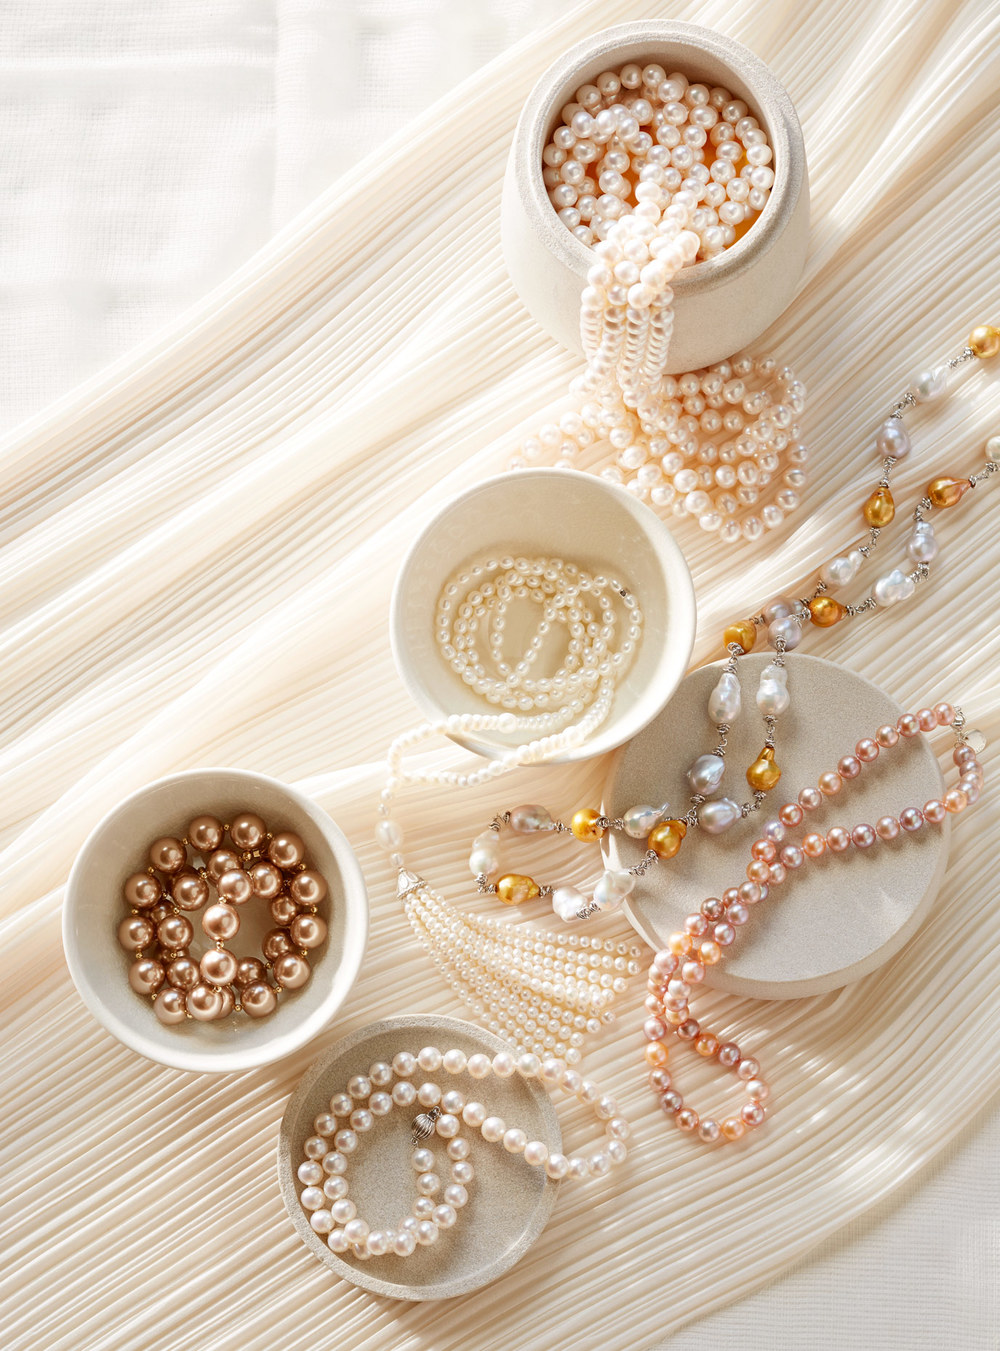 Product photography Jewelry Derek Israelsen Pearls Everywhere